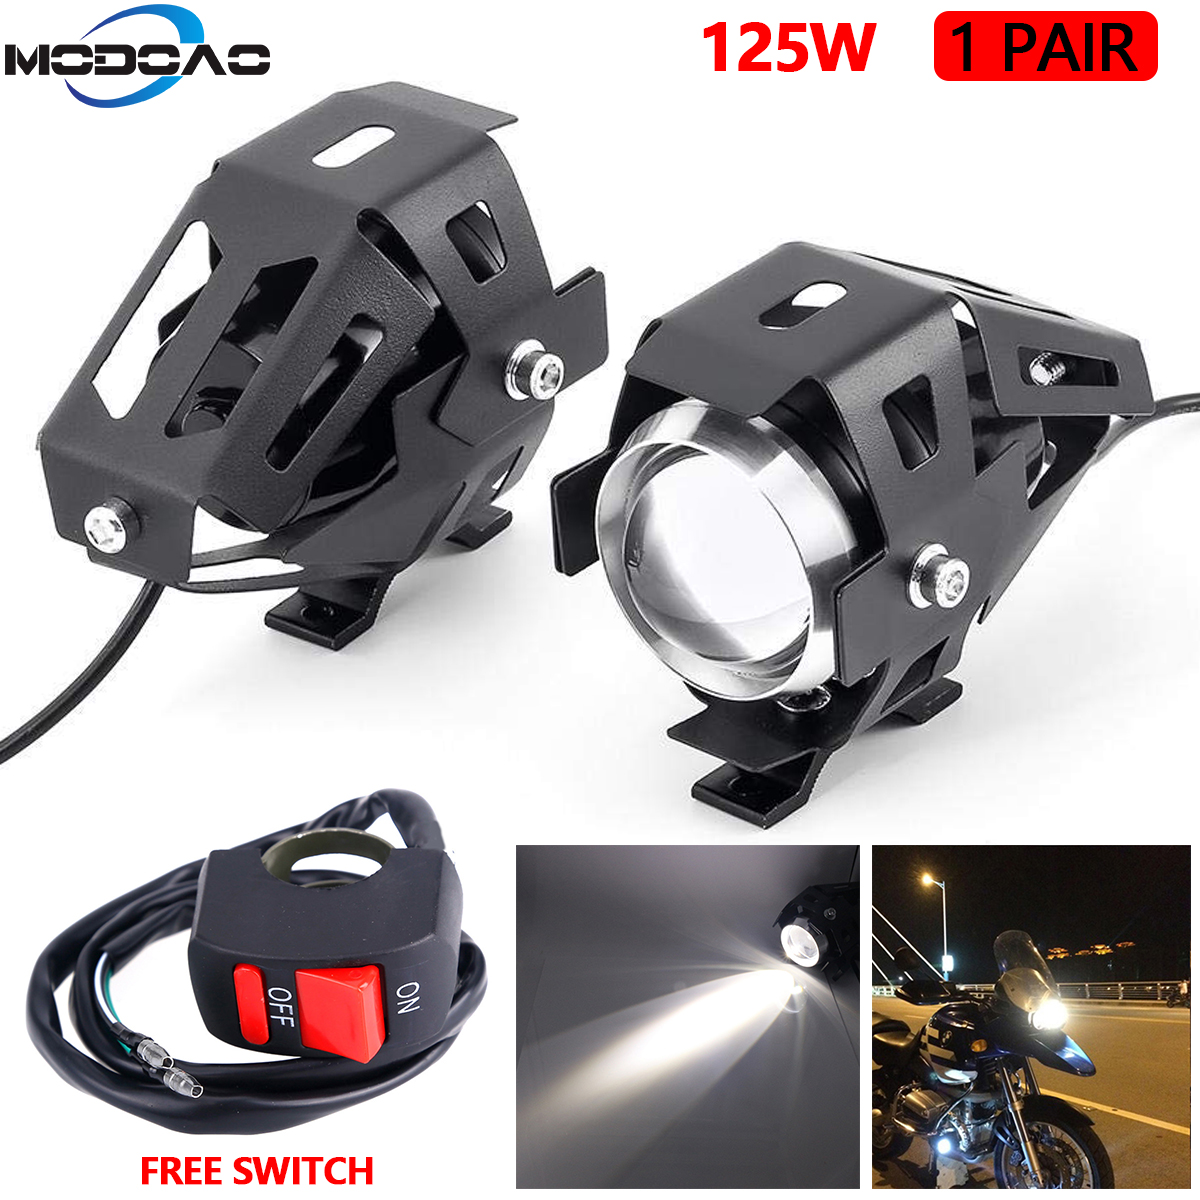 2PCS 125W U5 Motorcycle Headlights Universal Auxiliary White Lamp LED Motorbike Spotlight Accessories Moto DRL Spot Head Lights